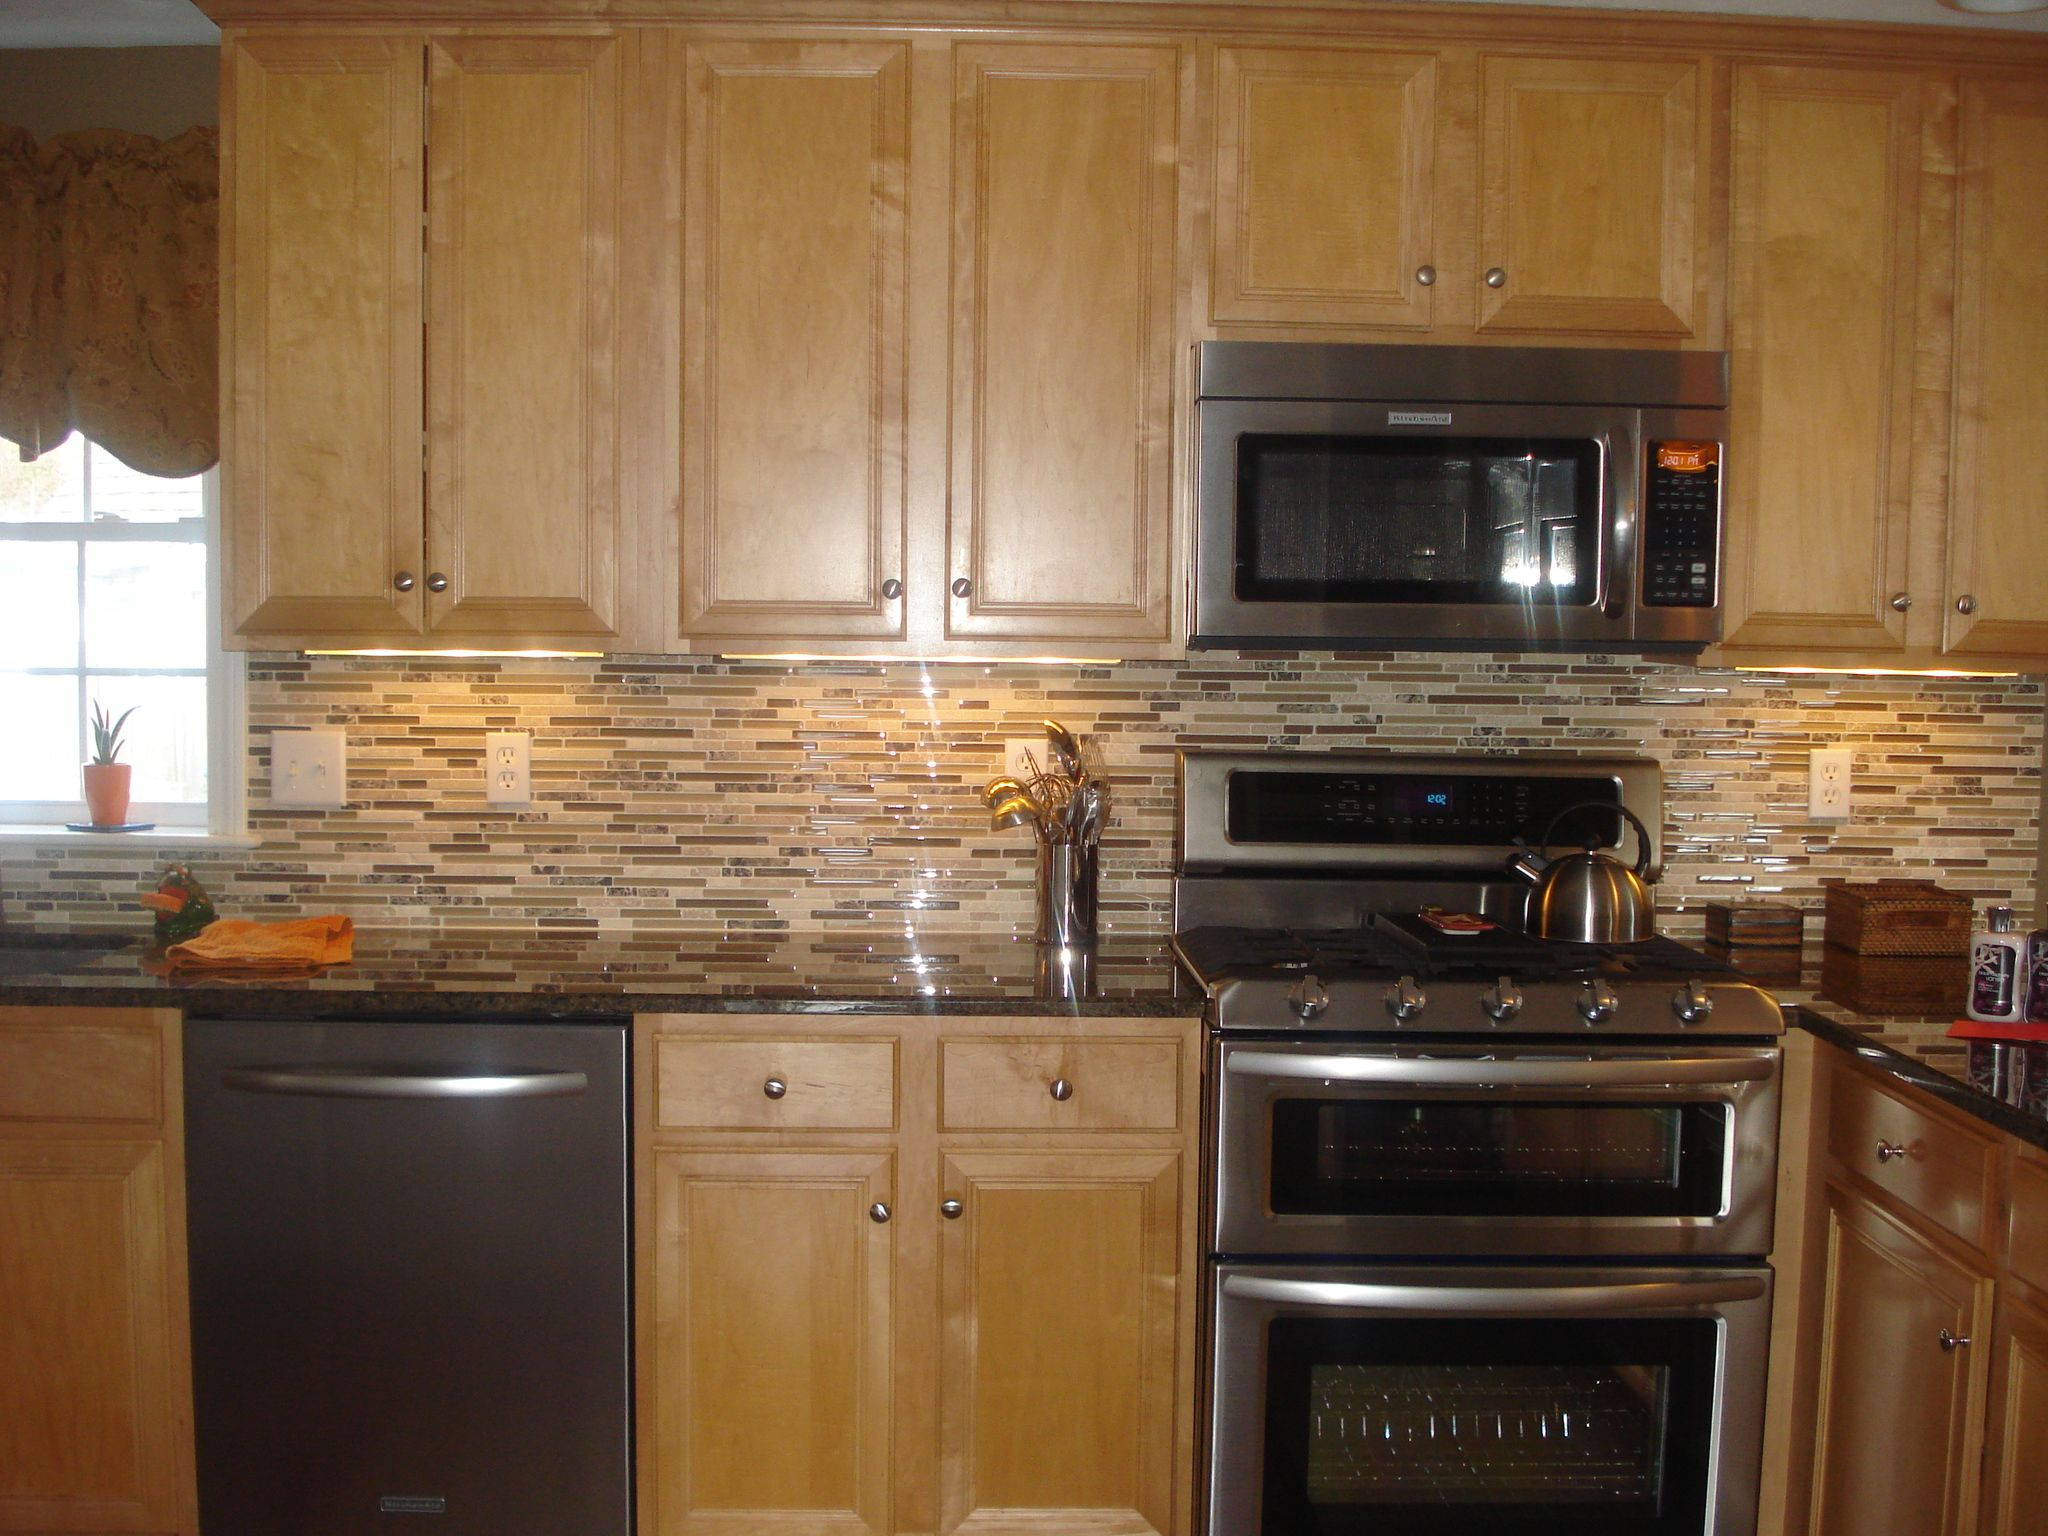 find this pin and more on ideas for home kitchen backsplash dark kitchen backsplash dark cabinets